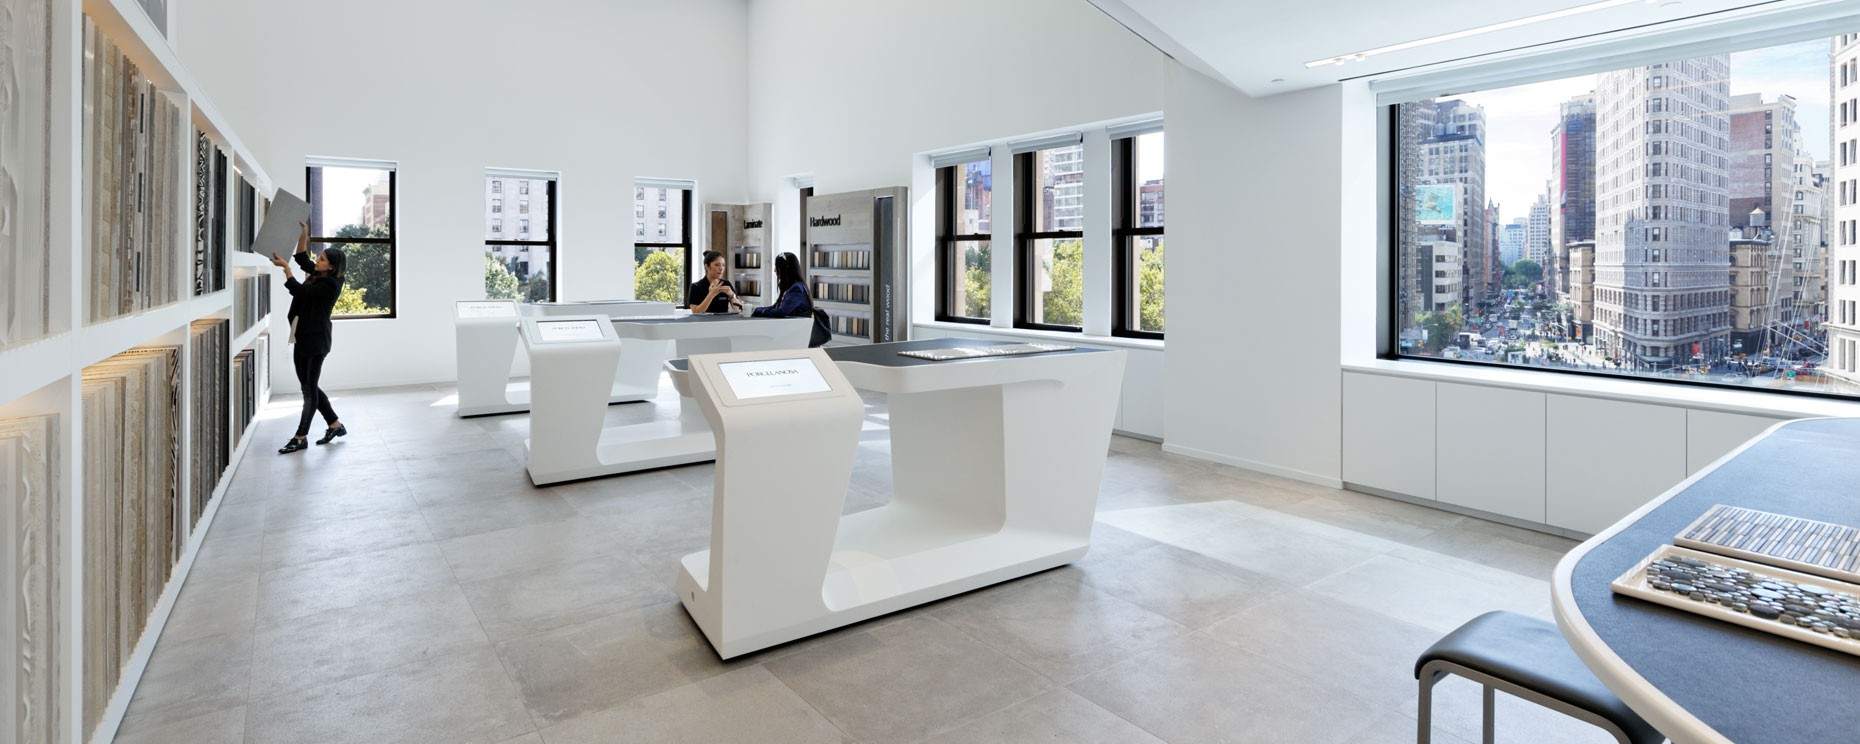 Porcelanosa Showroom, New York City. Thermoformed IPAD display fixtures  Material: Krion Architecture: Foster + Partners